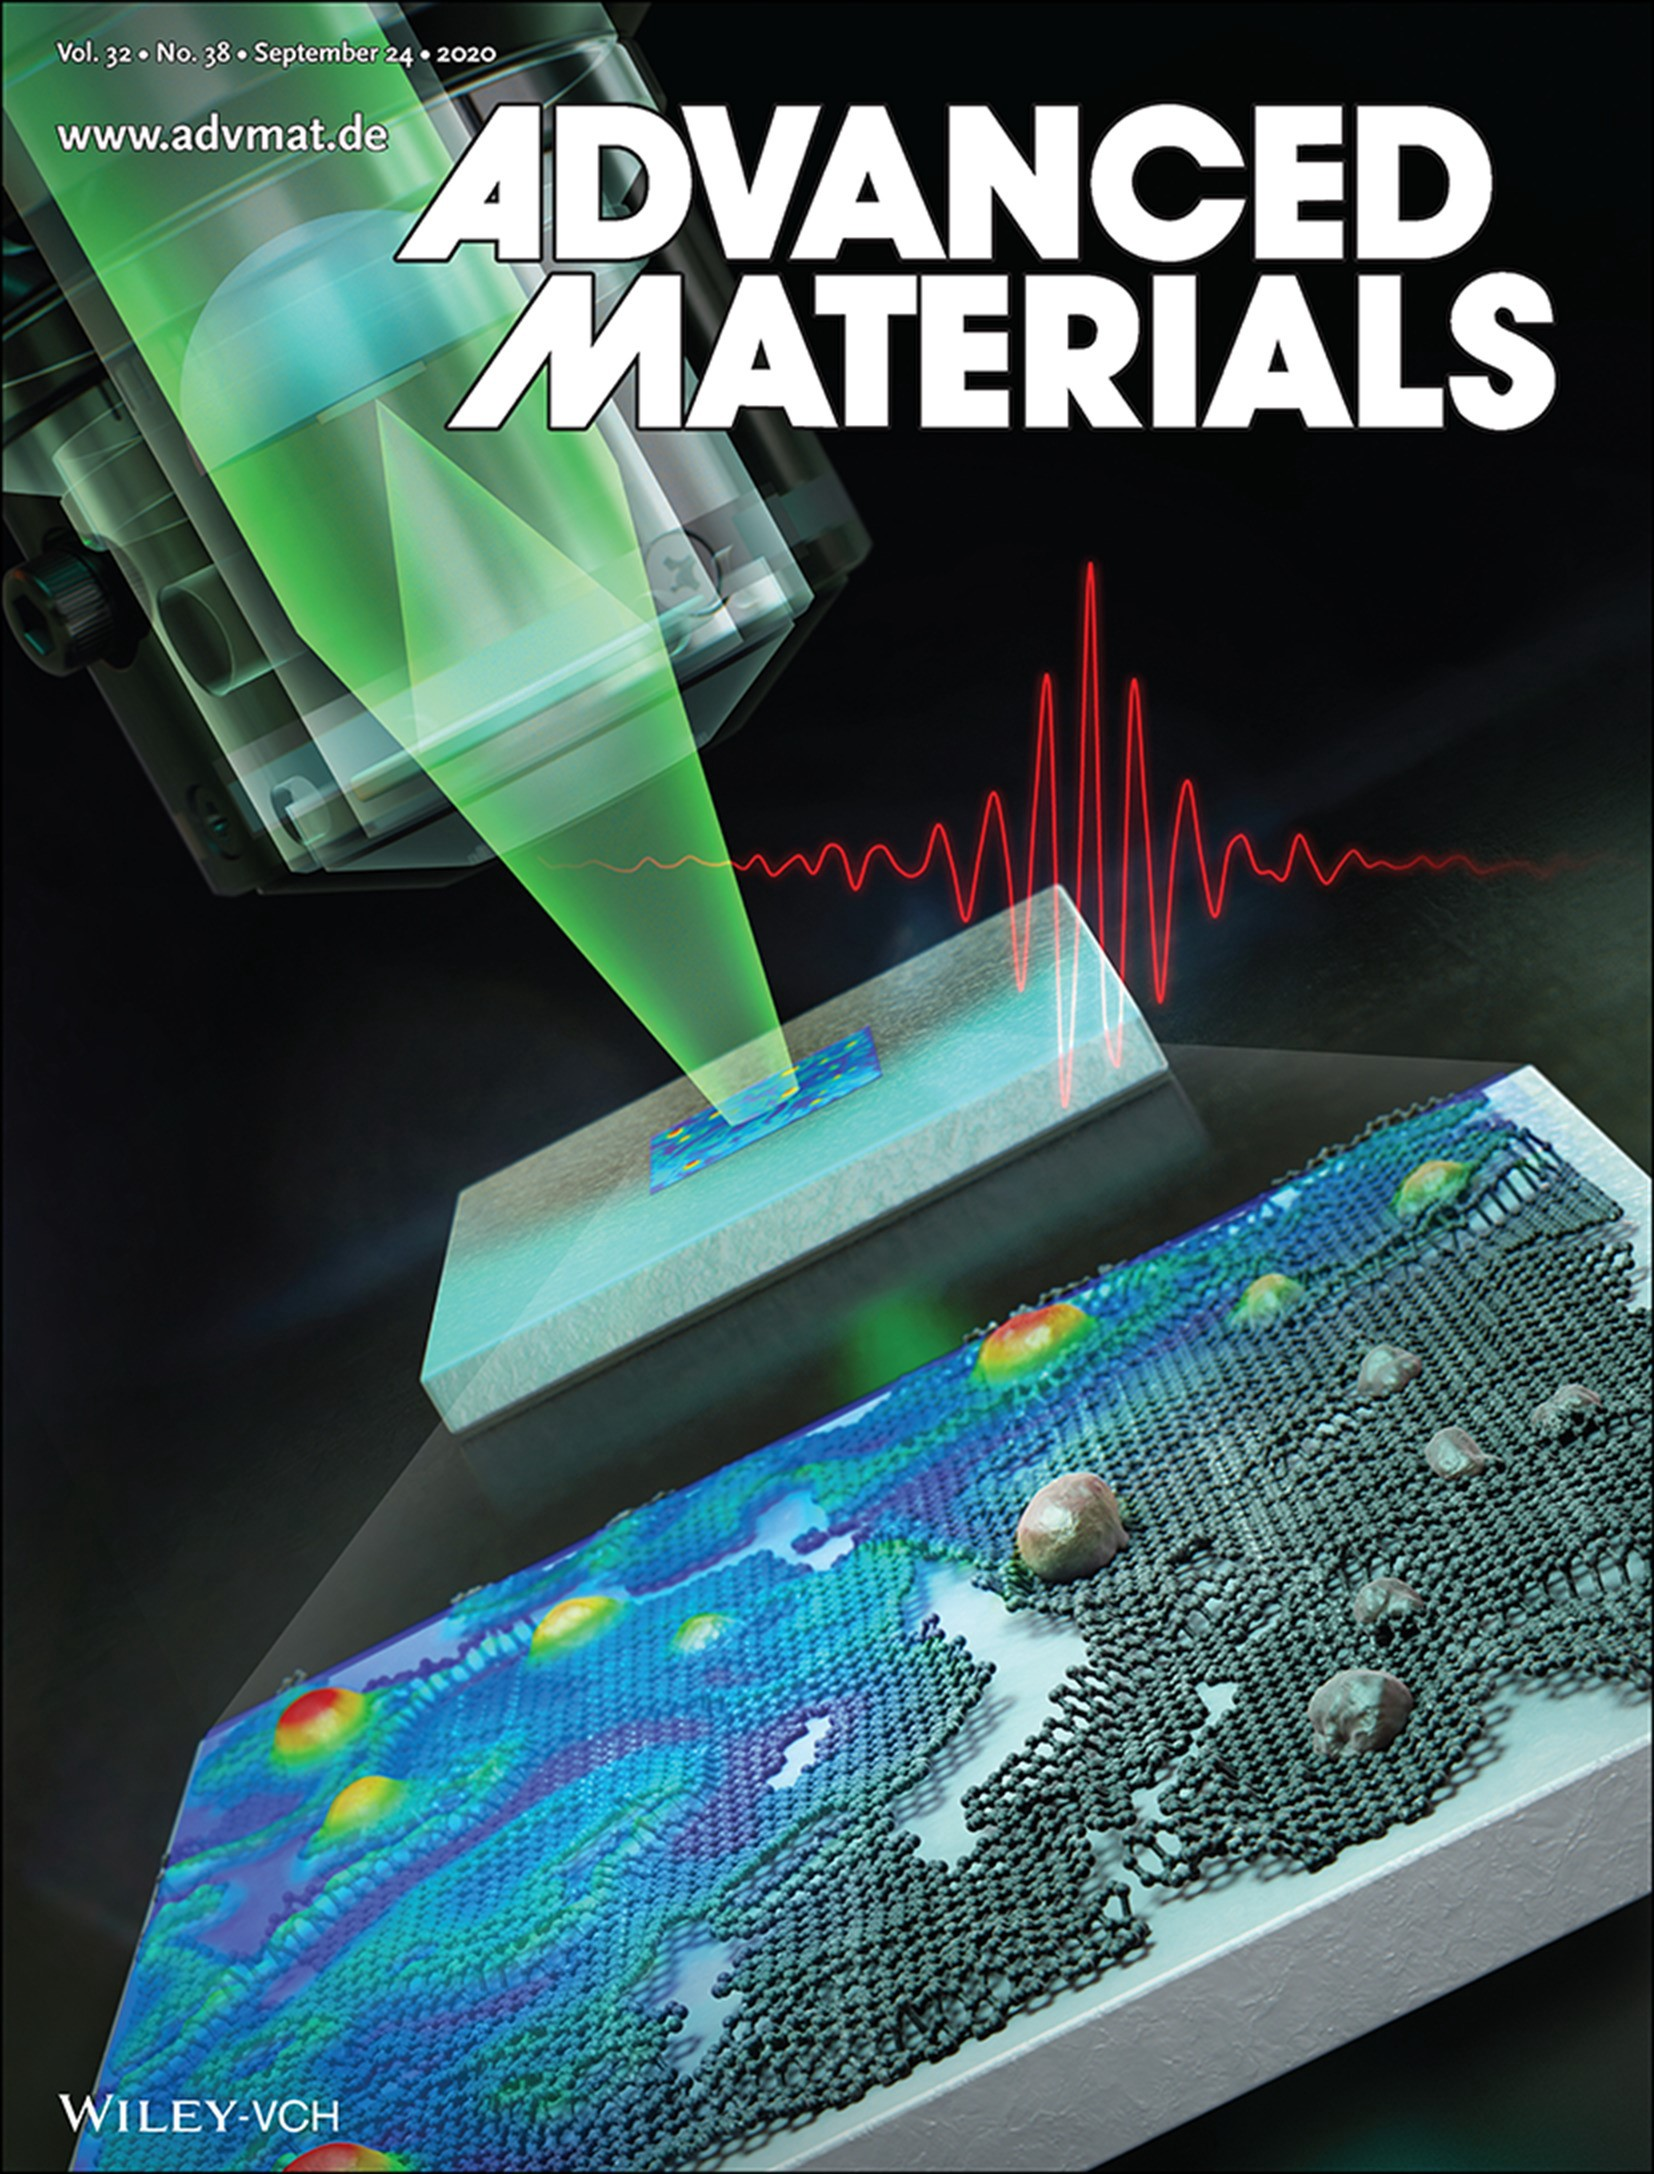 A schematic diagram of a method for analyzing defects such as polymer residues, tears, and wrinkles on graphene using a phase shift interferometer